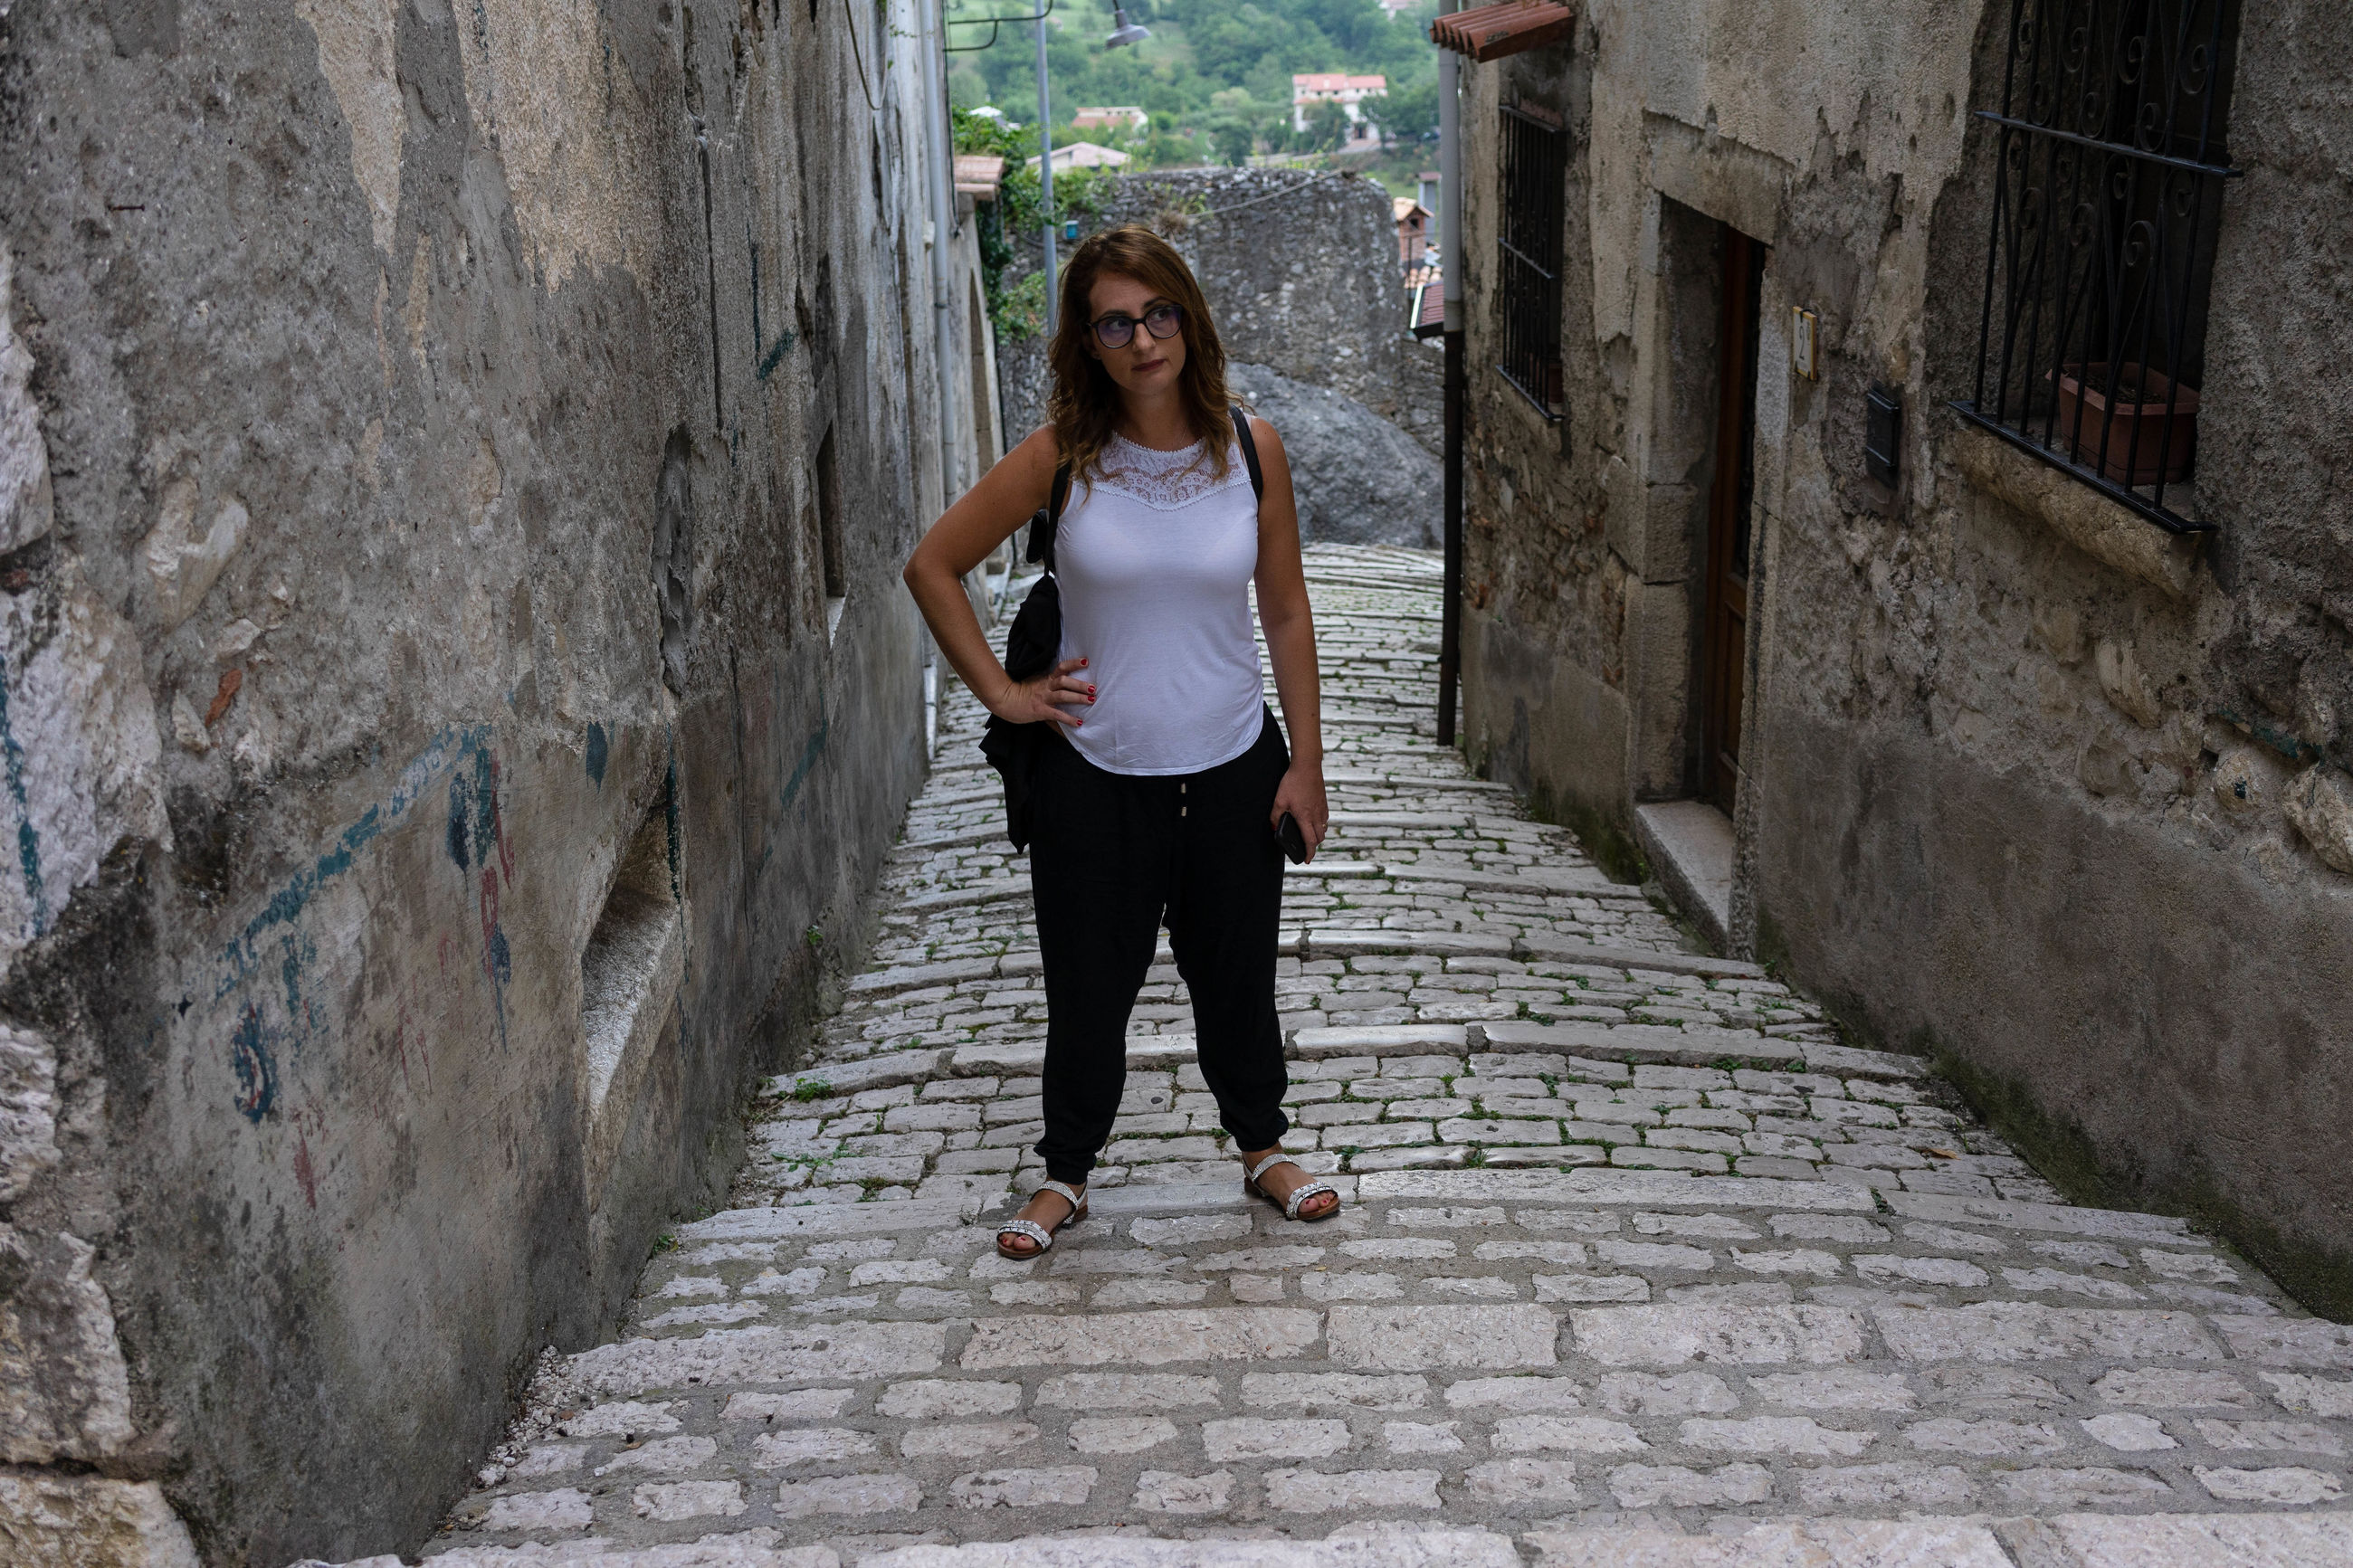 architecture, front view, one person, built structure, full length, young adult, building exterior, looking at camera, portrait, casual clothing, lifestyles, wall - building feature, real people, day, footpath, leisure activity, standing, young women, outdoors, hairstyle, beautiful woman, alley